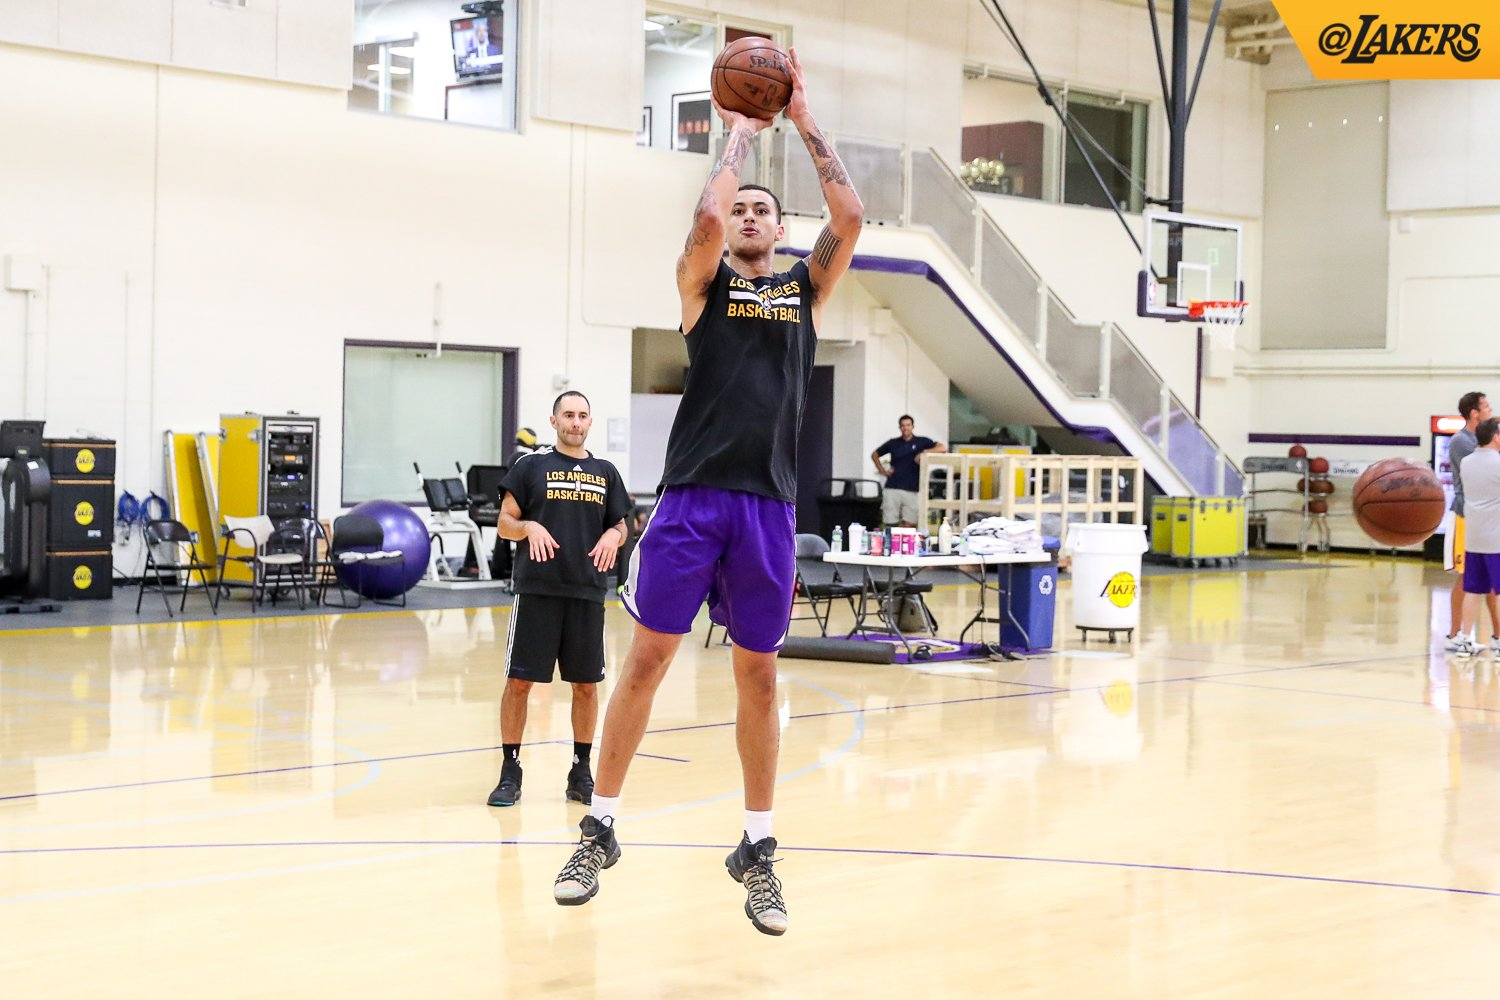 Staying in the gym, all offseason long #LakeShow https://t.co/EuNimtqBA5